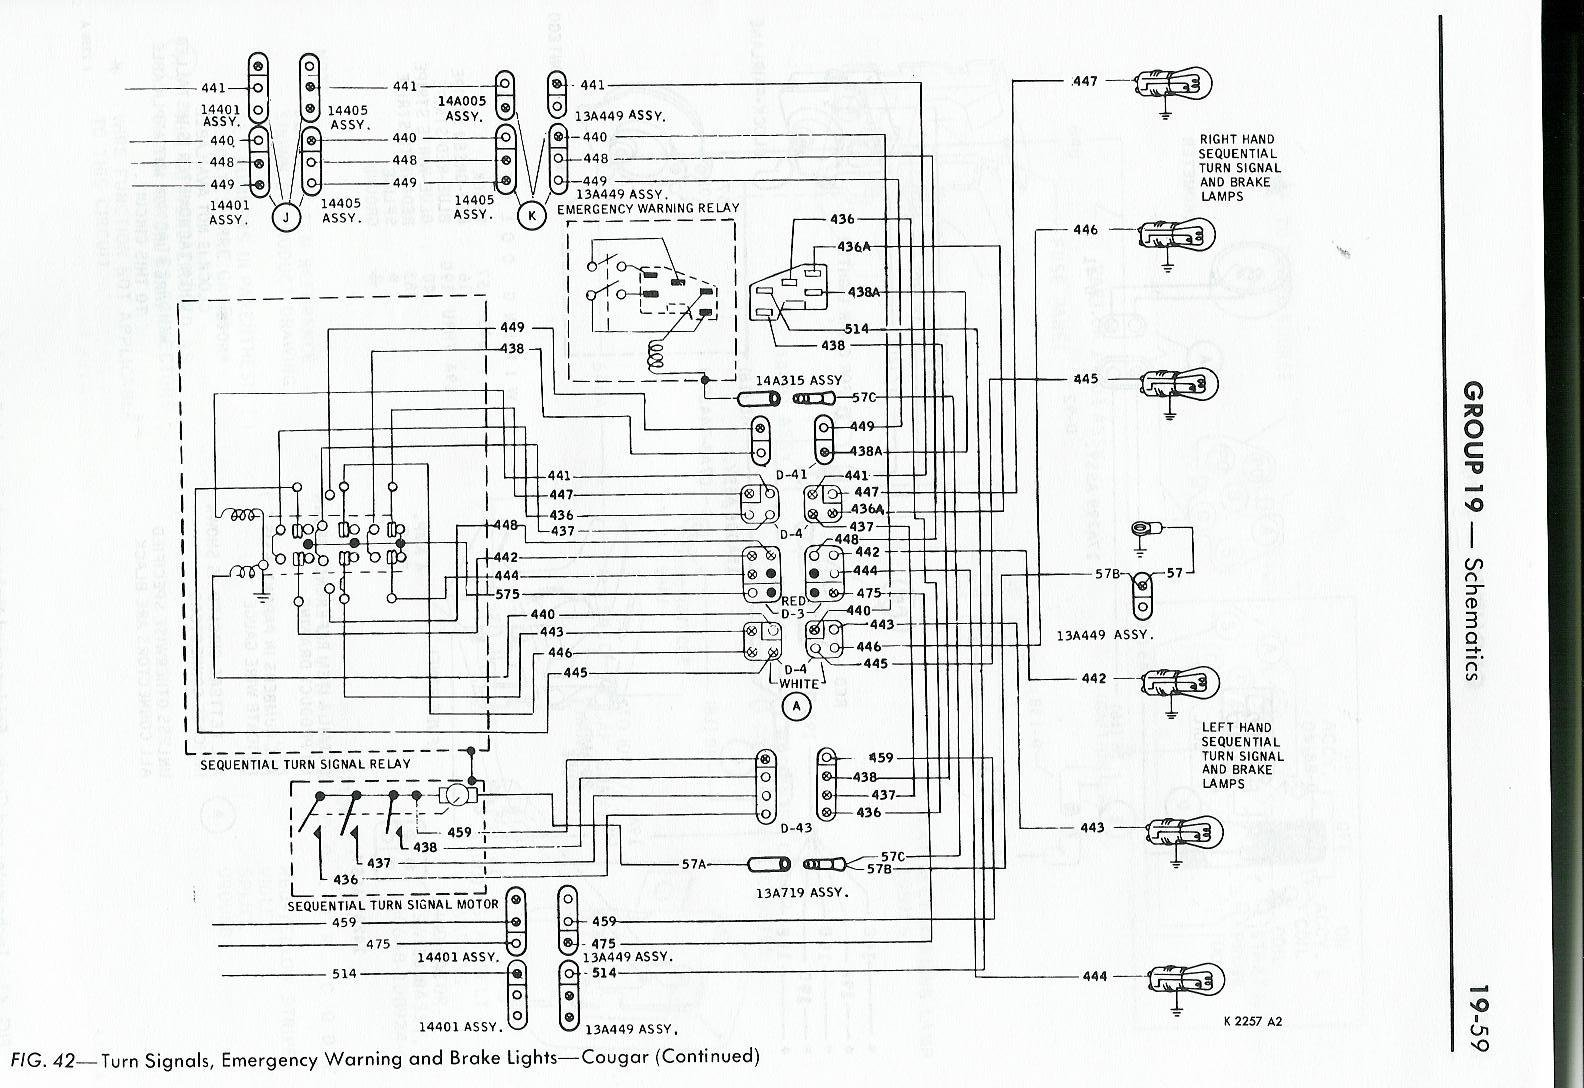 1969 mustang wiring diagram 1969 discover your wiring diagram 69 mustang wiring diagram